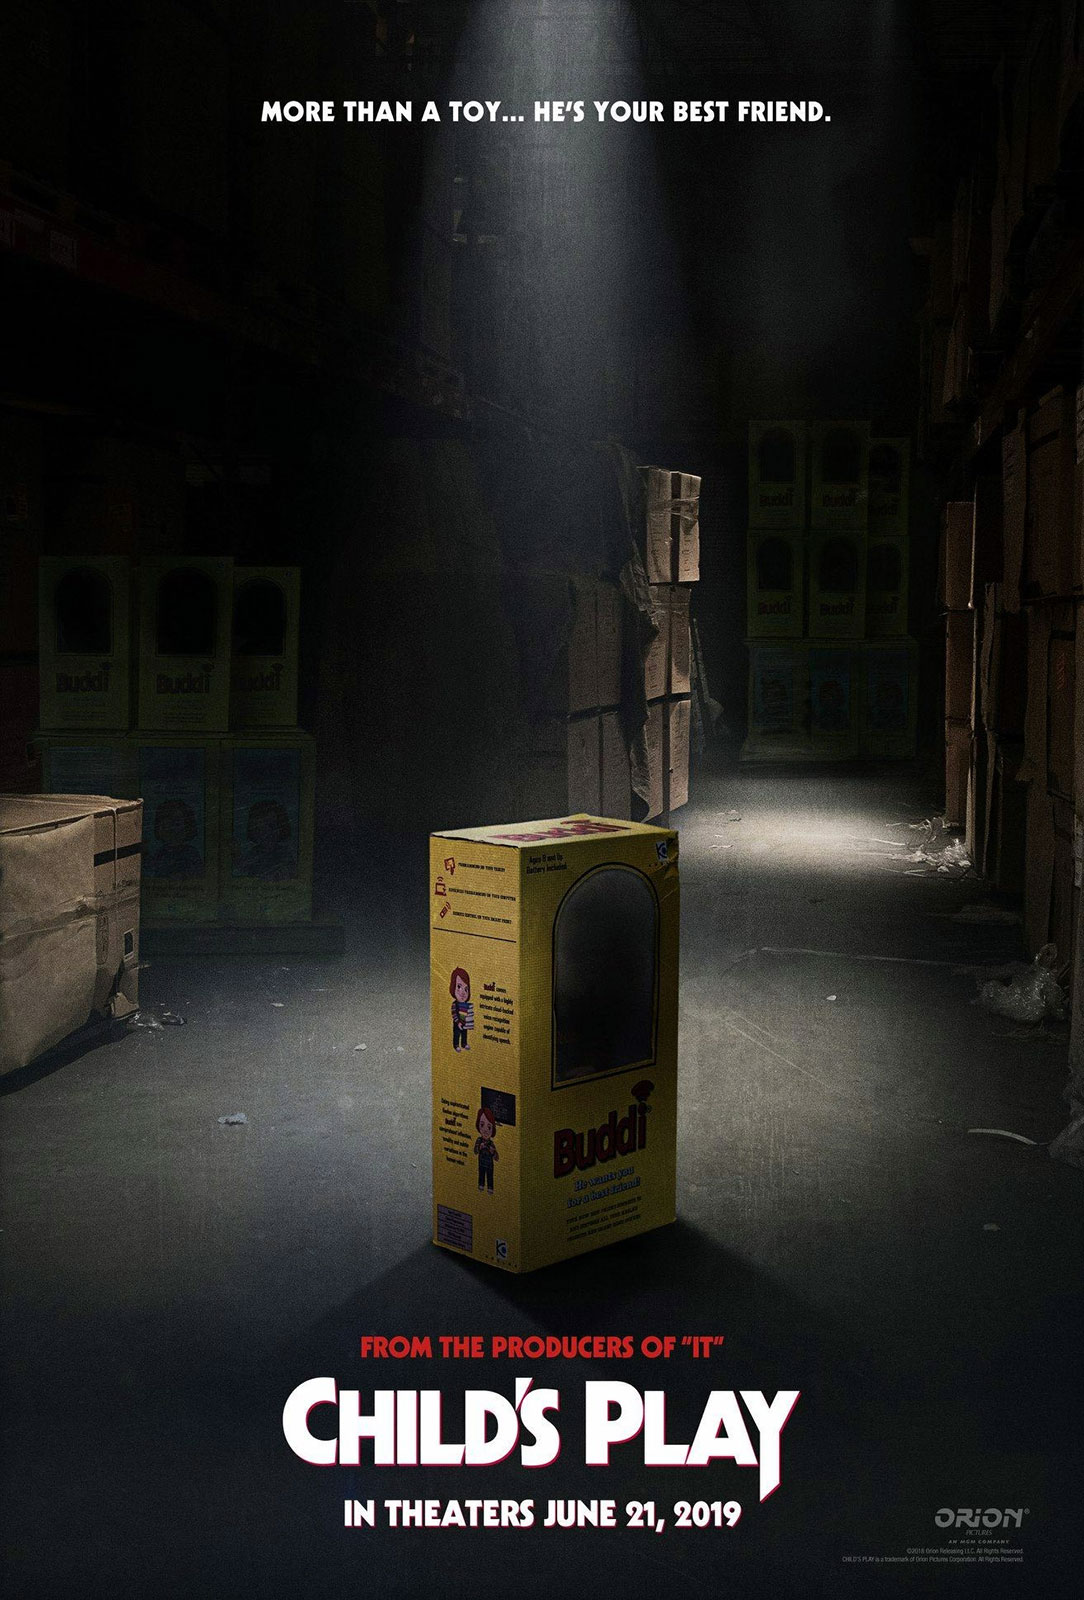 Movie Poster 2019: Child's Play (2019) Teaser Trailer